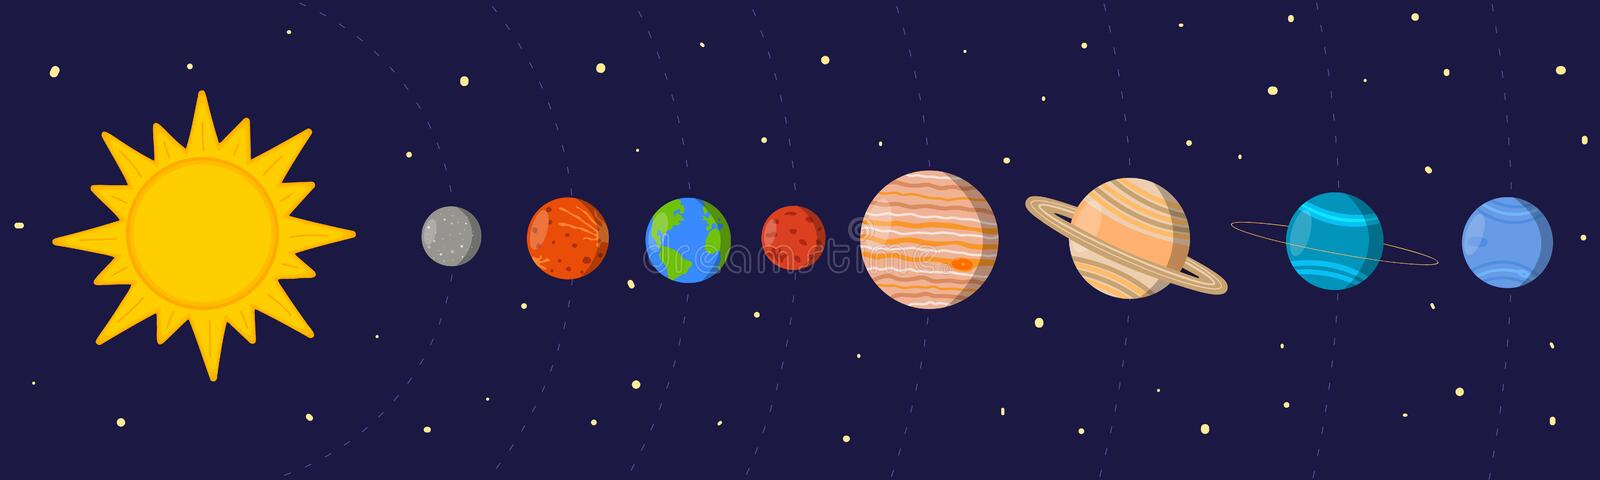 Cartoon Colorful Solar System Sun And Planets In Their Orbits On Space Background Vector Illustration For Kids Stock Vector Illustration Of Science Neptune 202236121